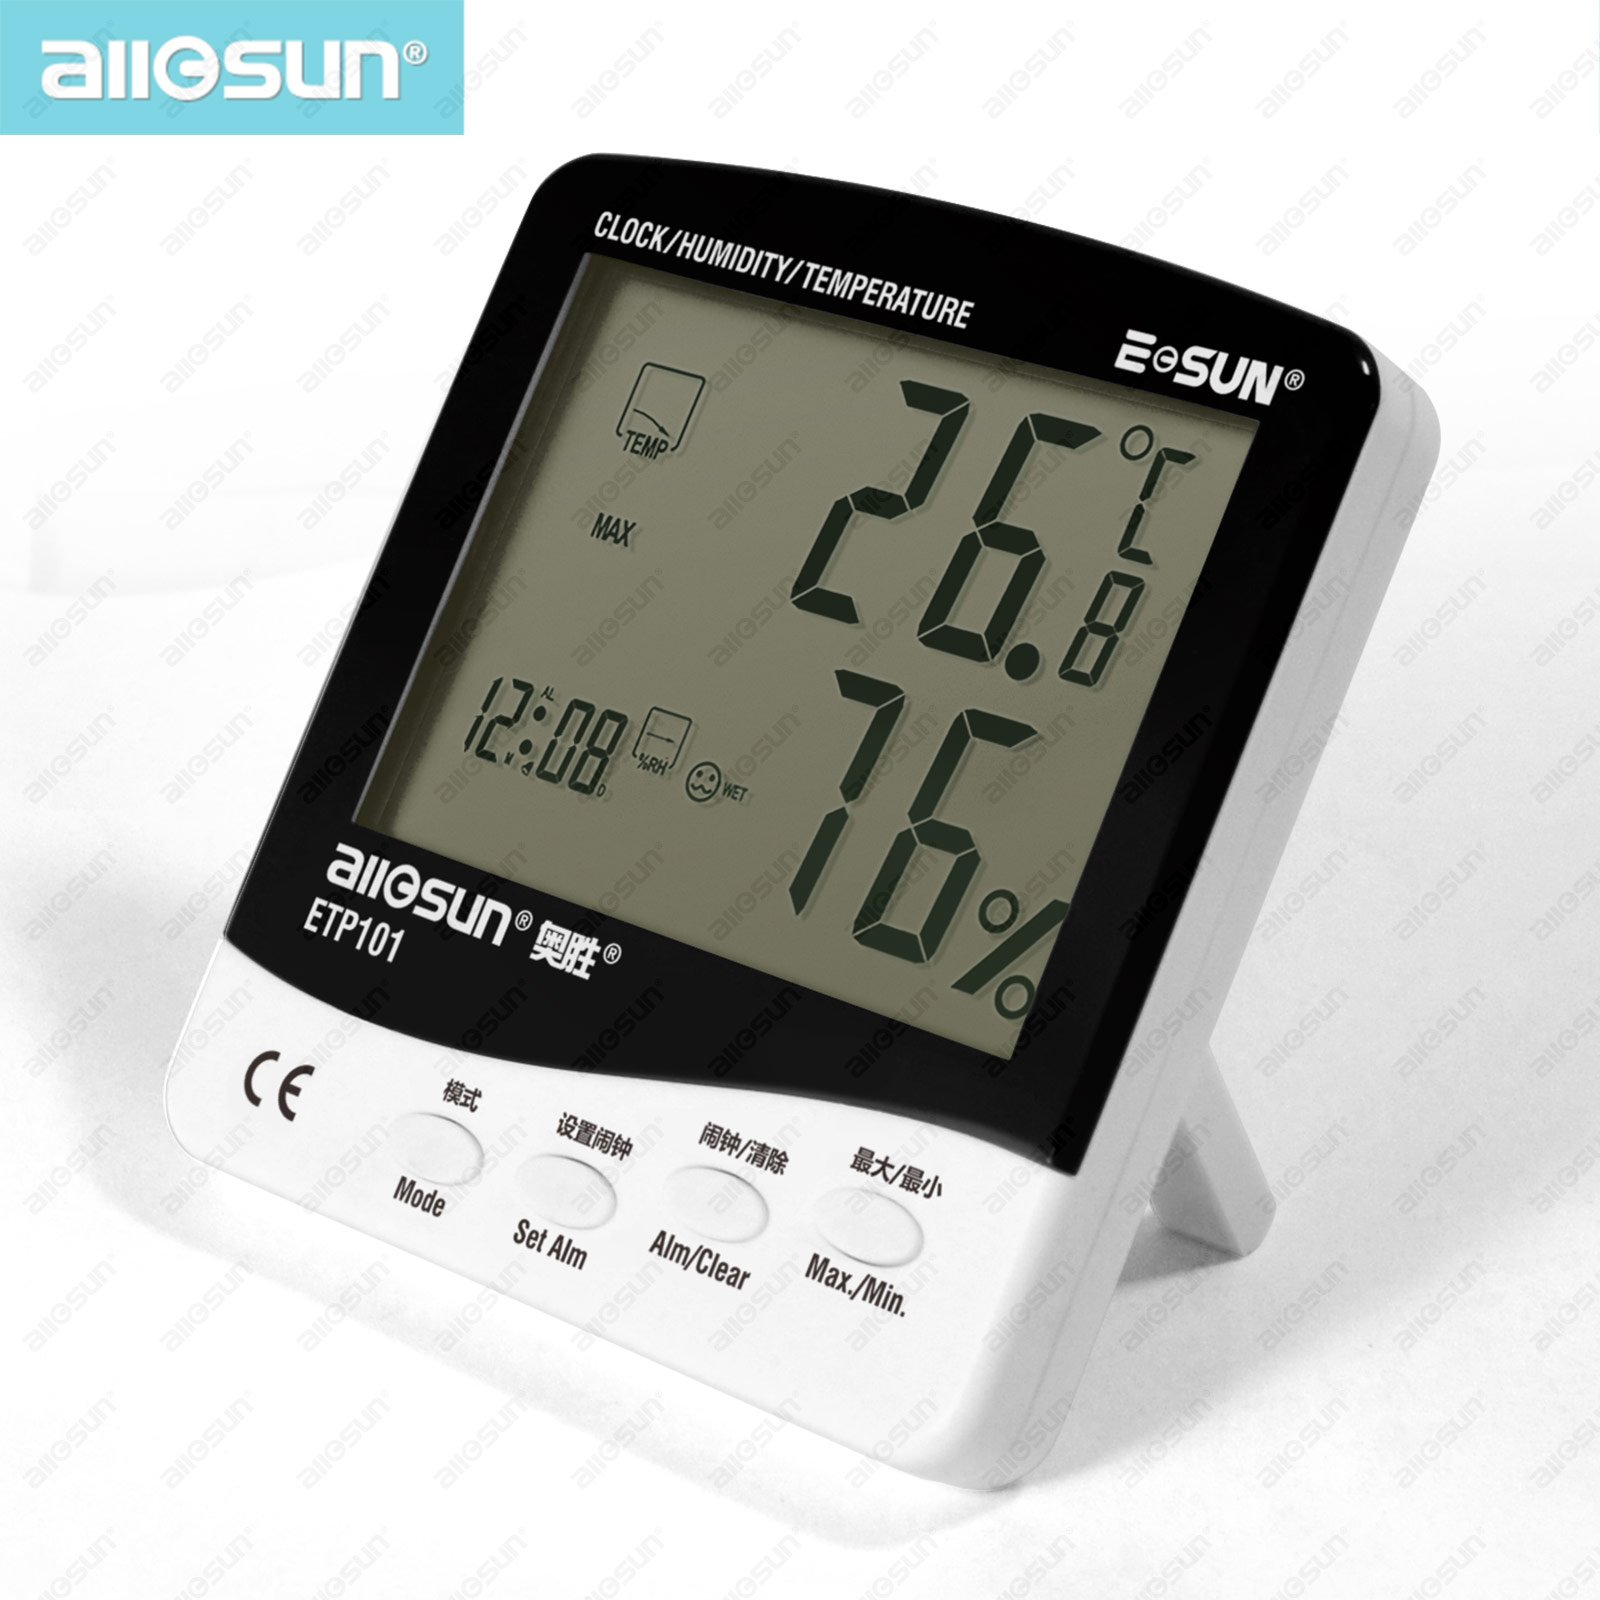 all sun ETP101 font b Digital b font Thermo hygrometer Dew point Meter with Humidity Alarm